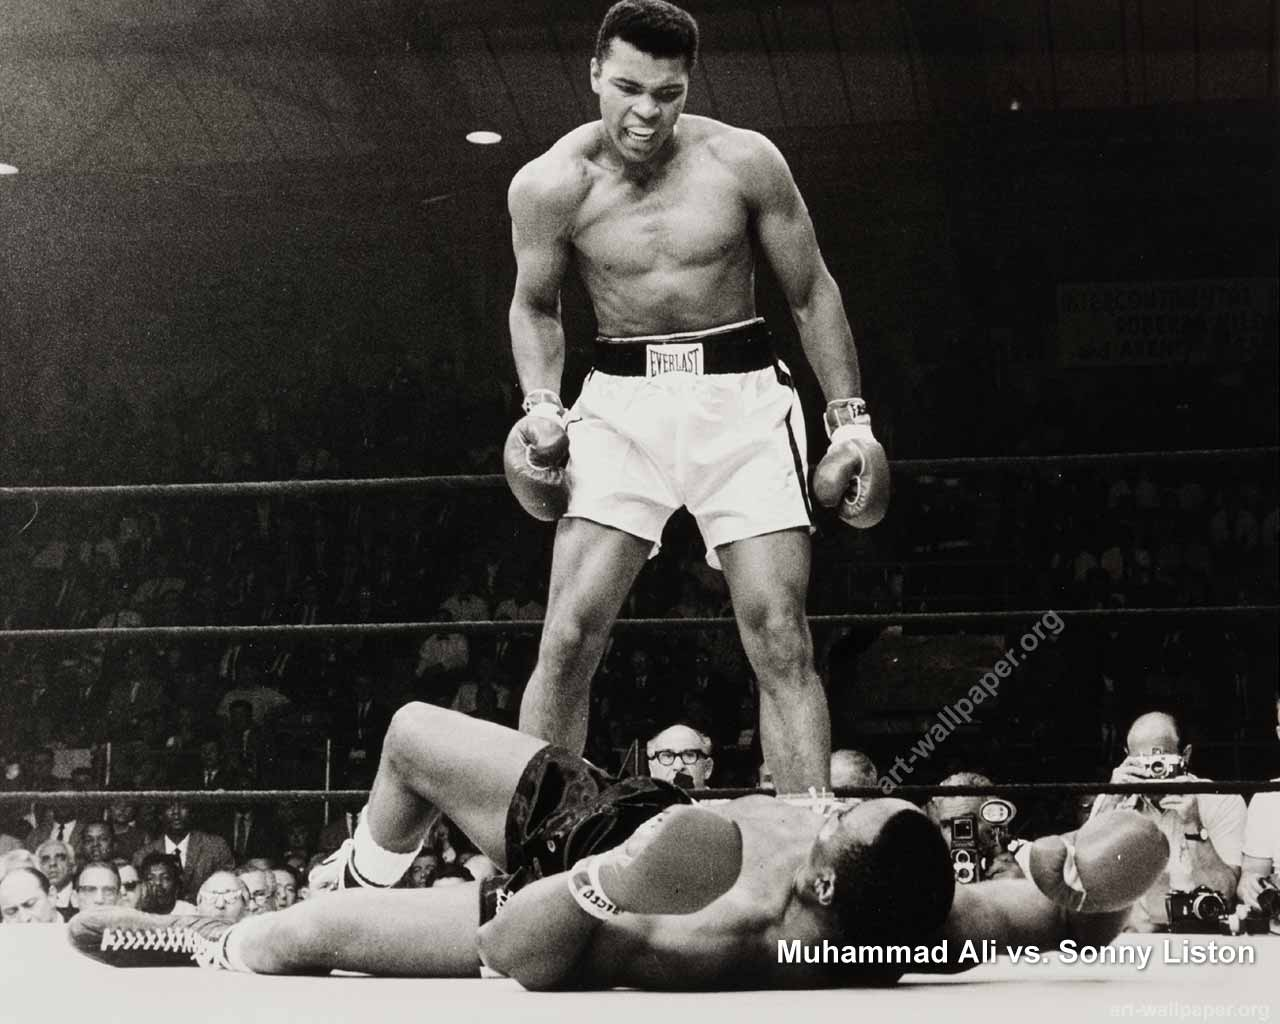 Muhammad Ali vs Sonny Liston Poster and Wallpaper Pictures 1280x1024